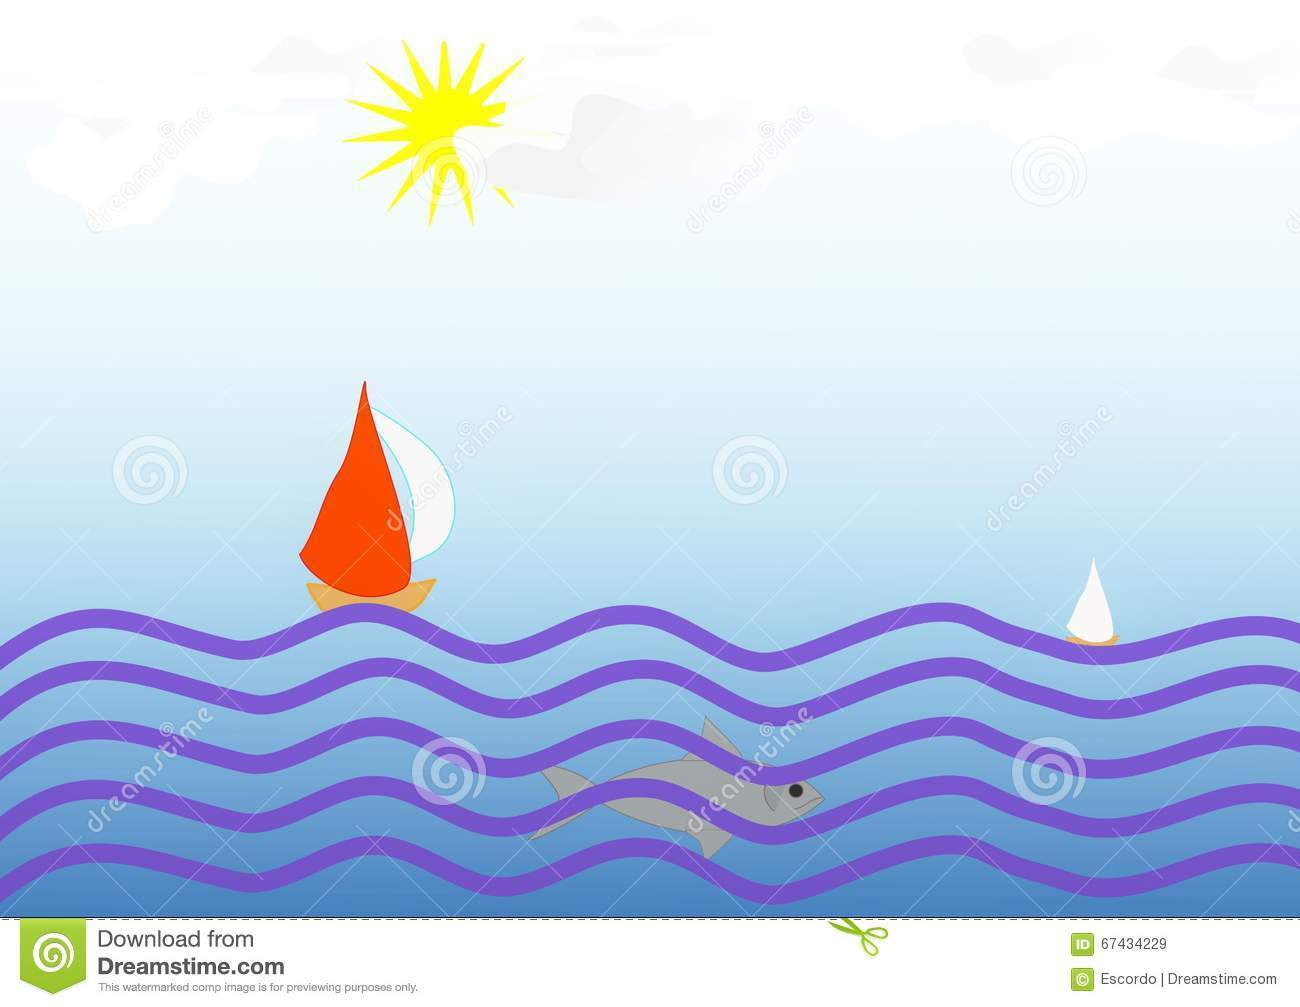 Mar clipart picture library download Mar clipart » Clipart Portal picture library download